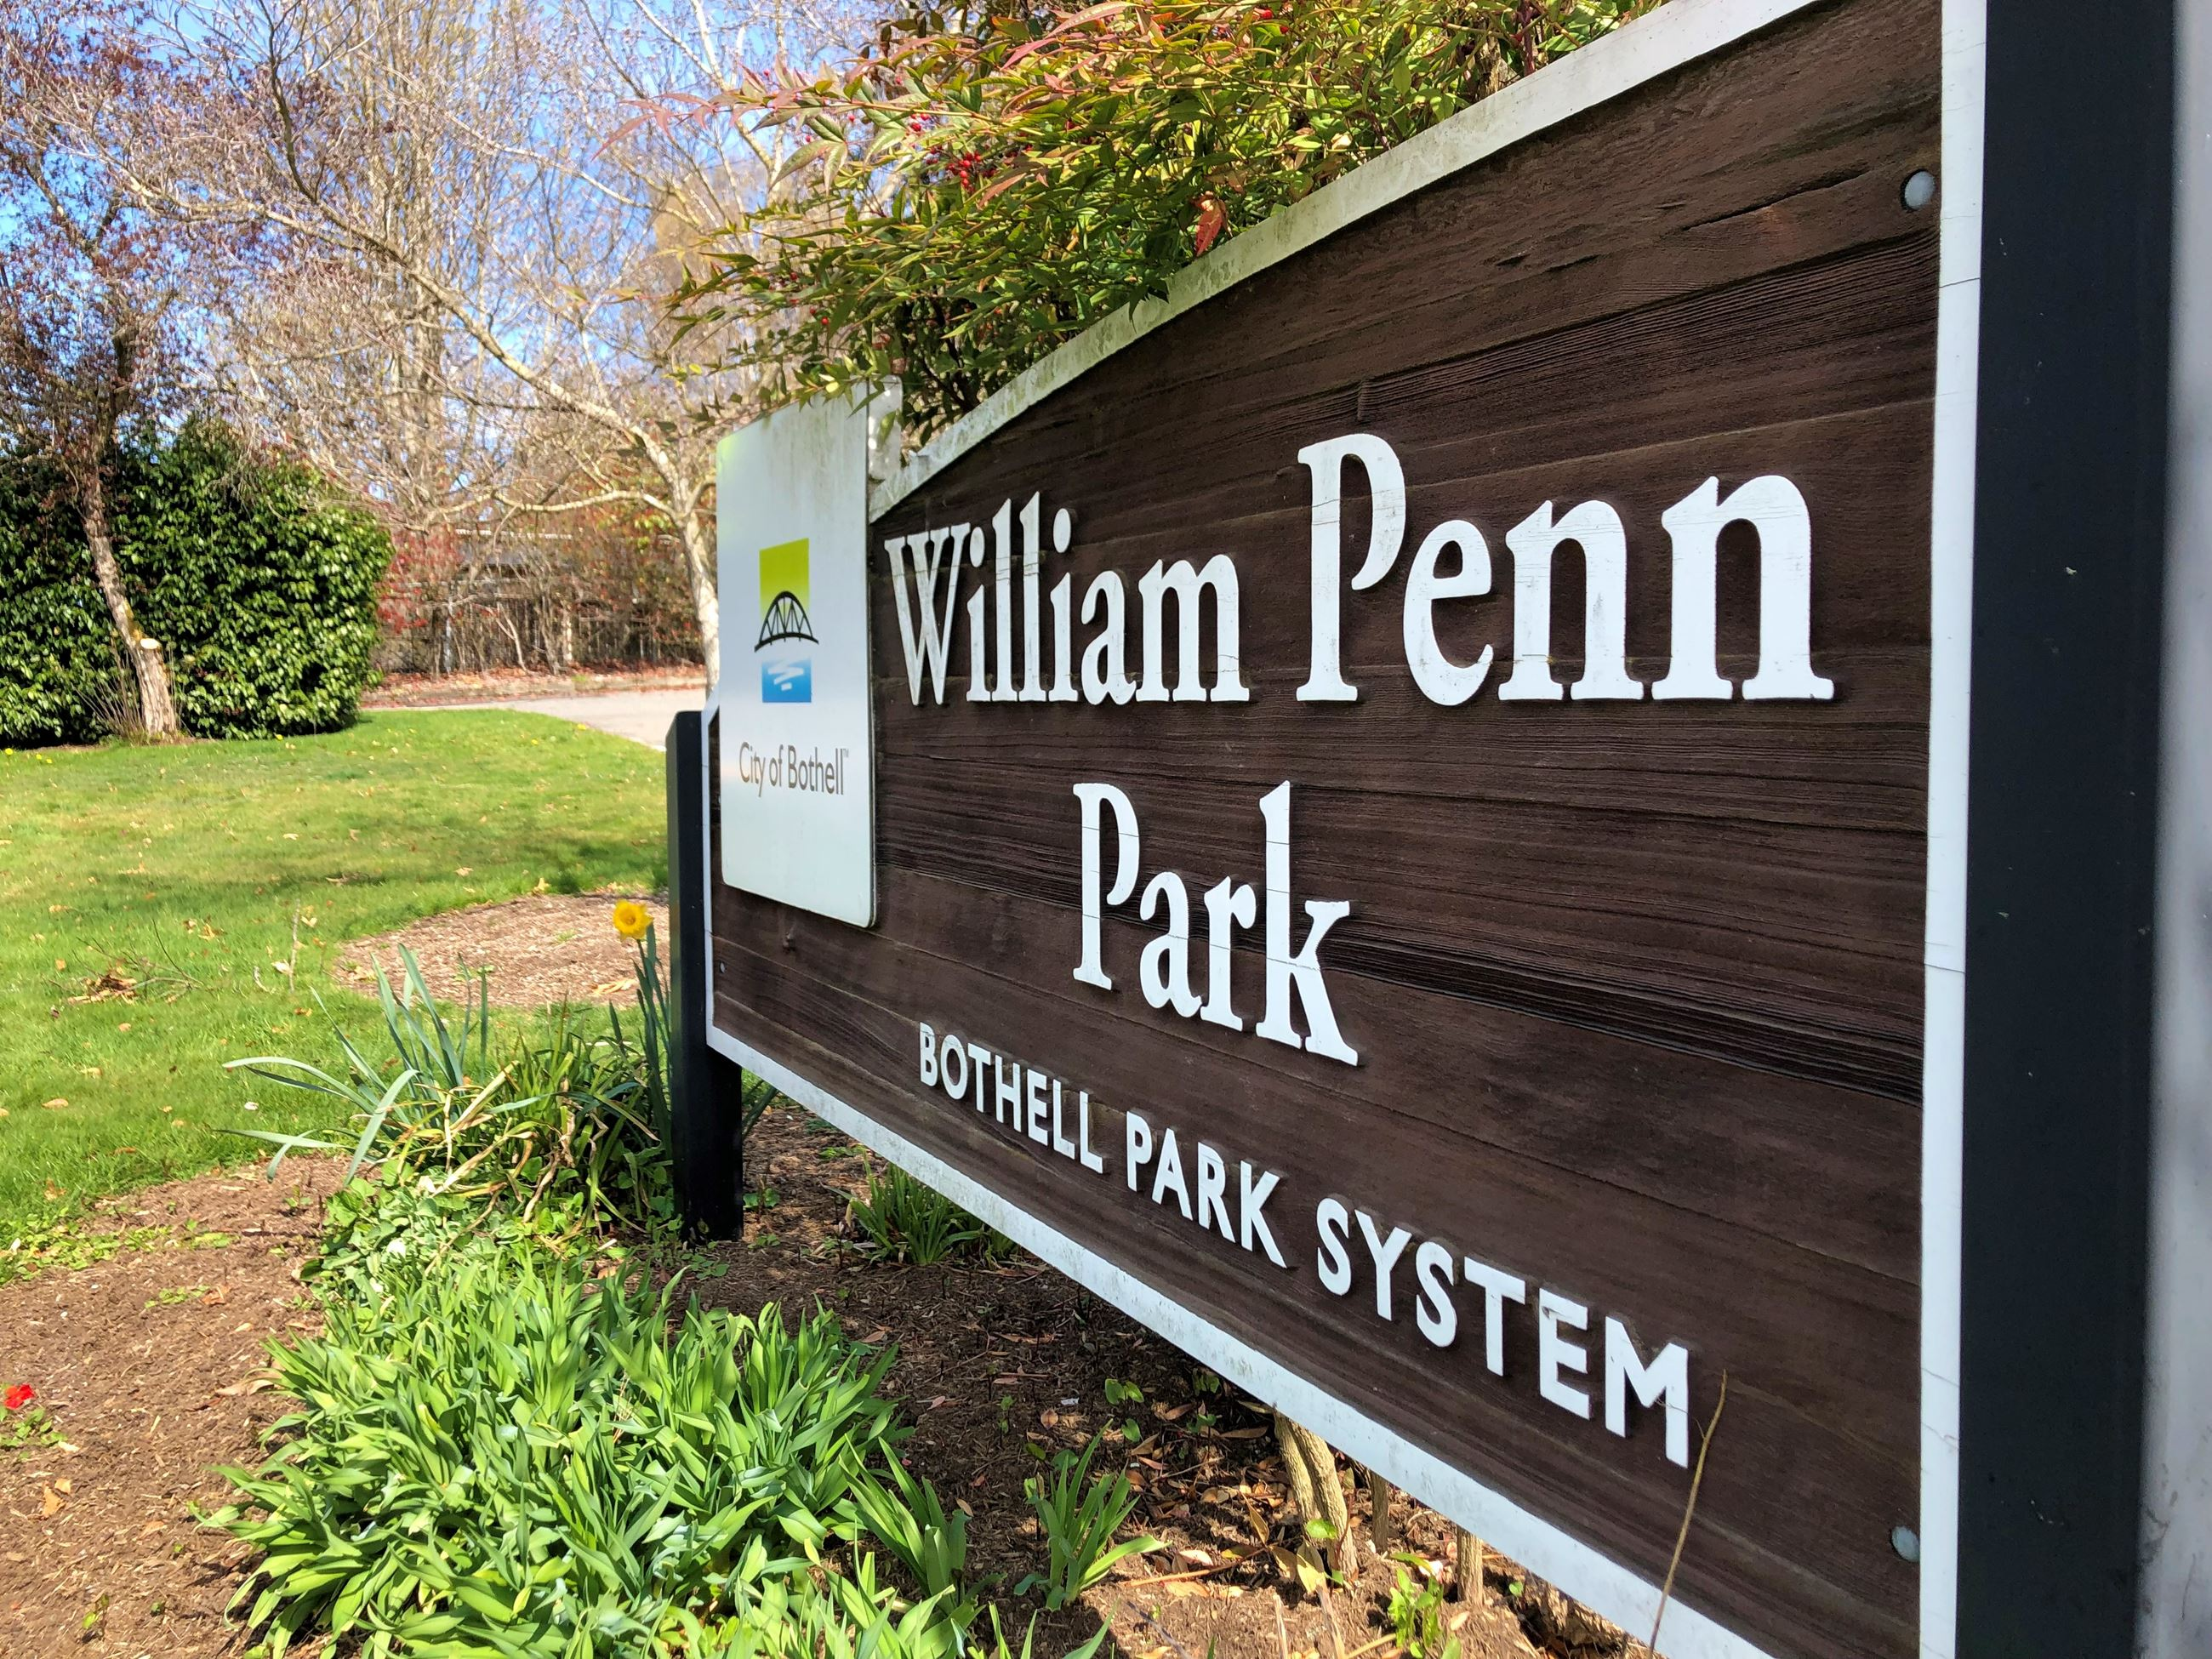 William Penn Park sign